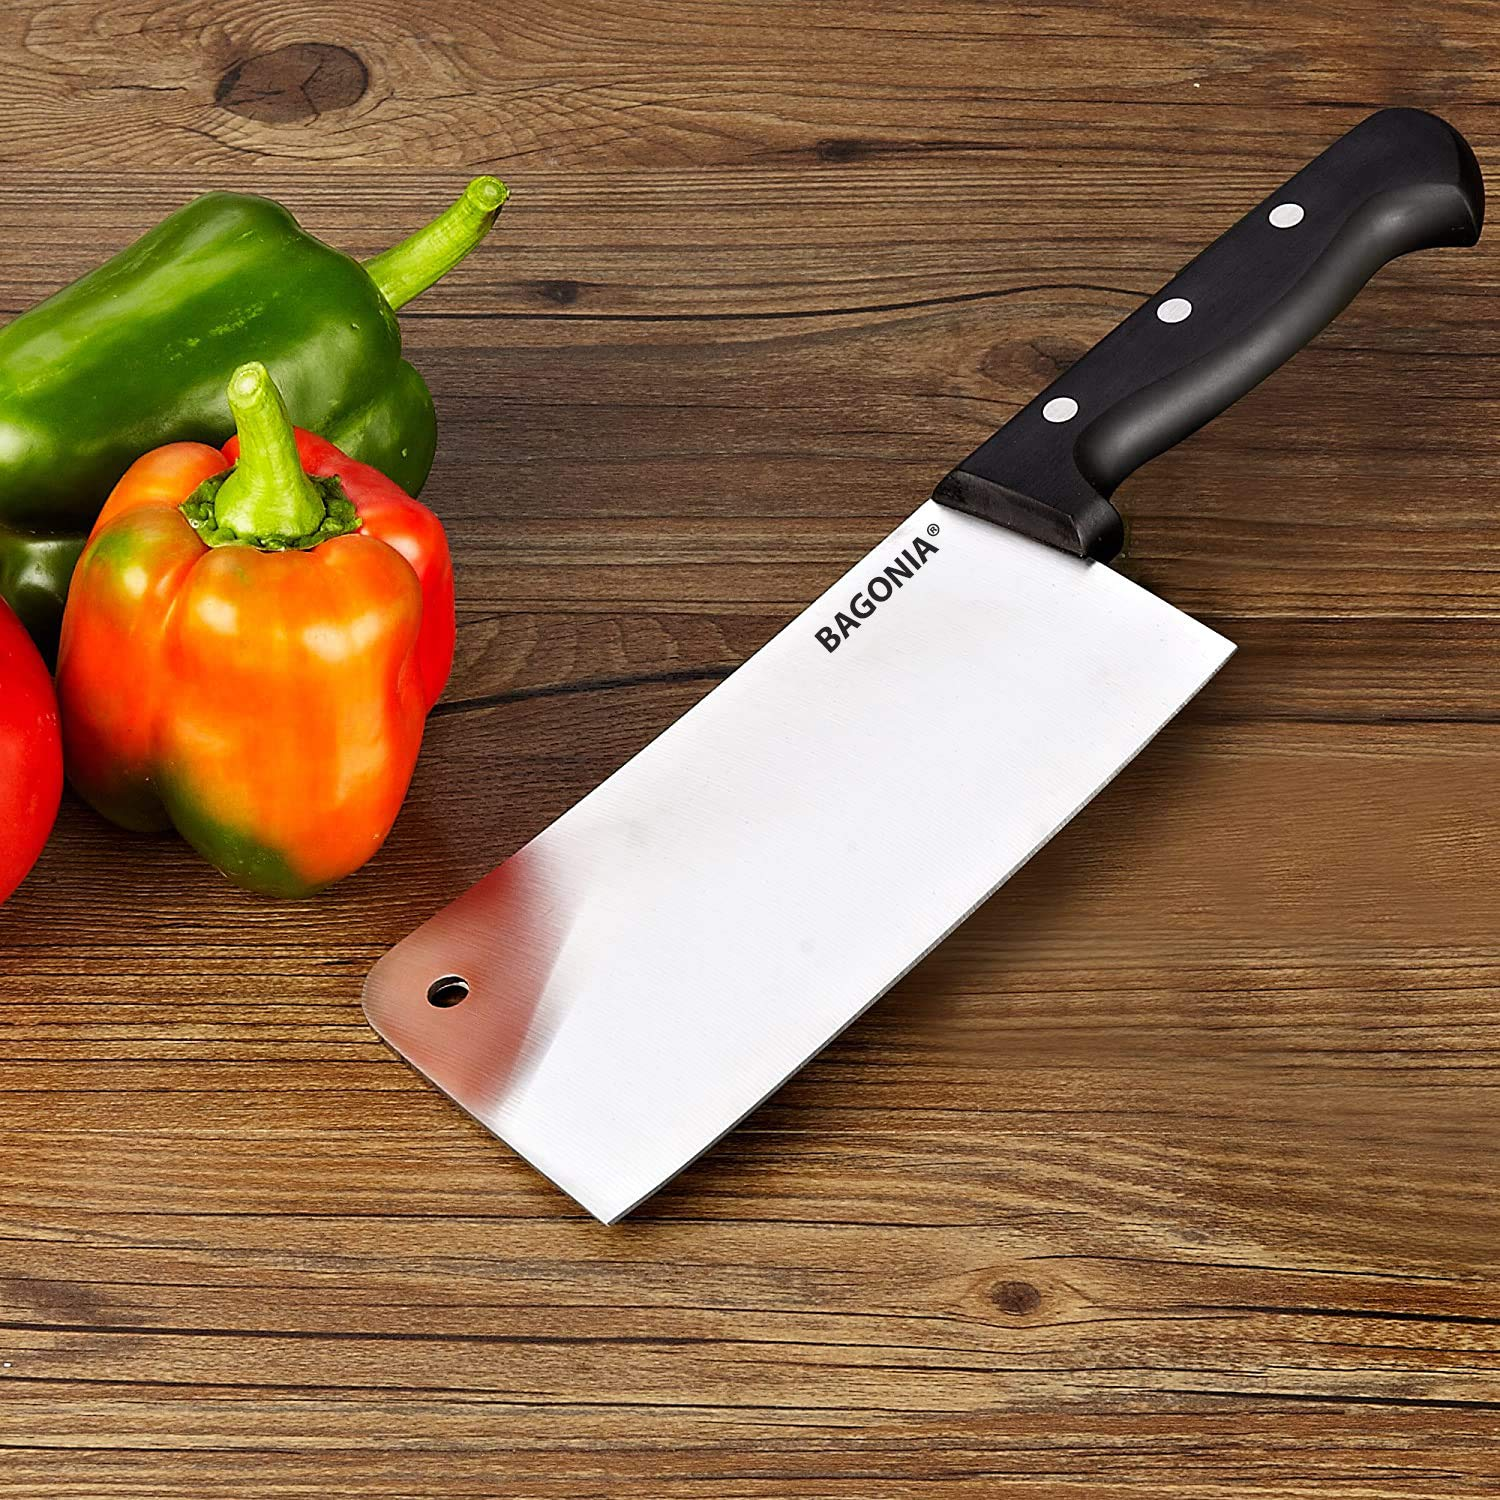 Bagonia Chopper Knife Cleaver Stainless Steel Multipurpose Use For Meat Cutting In Home Kitchen Or Restaurant Random Color Big Knife Buy Online In Azerbaijan At Azerbaijan Desertcart Com Productid 121755612